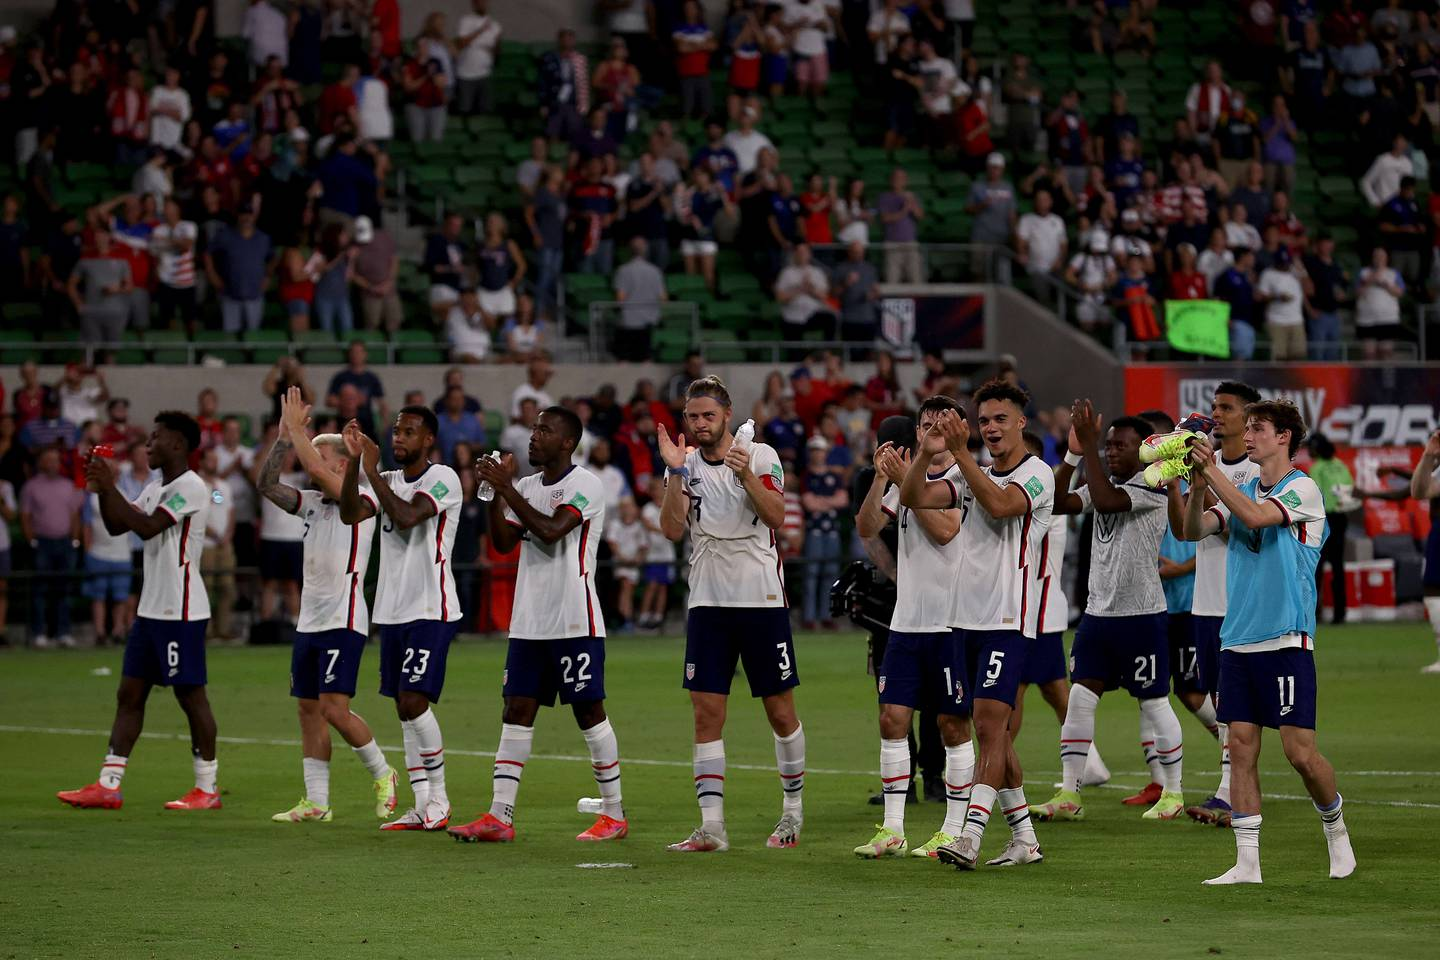 US coach: 'If we think we're cool, they'll kick our ass in Panama'